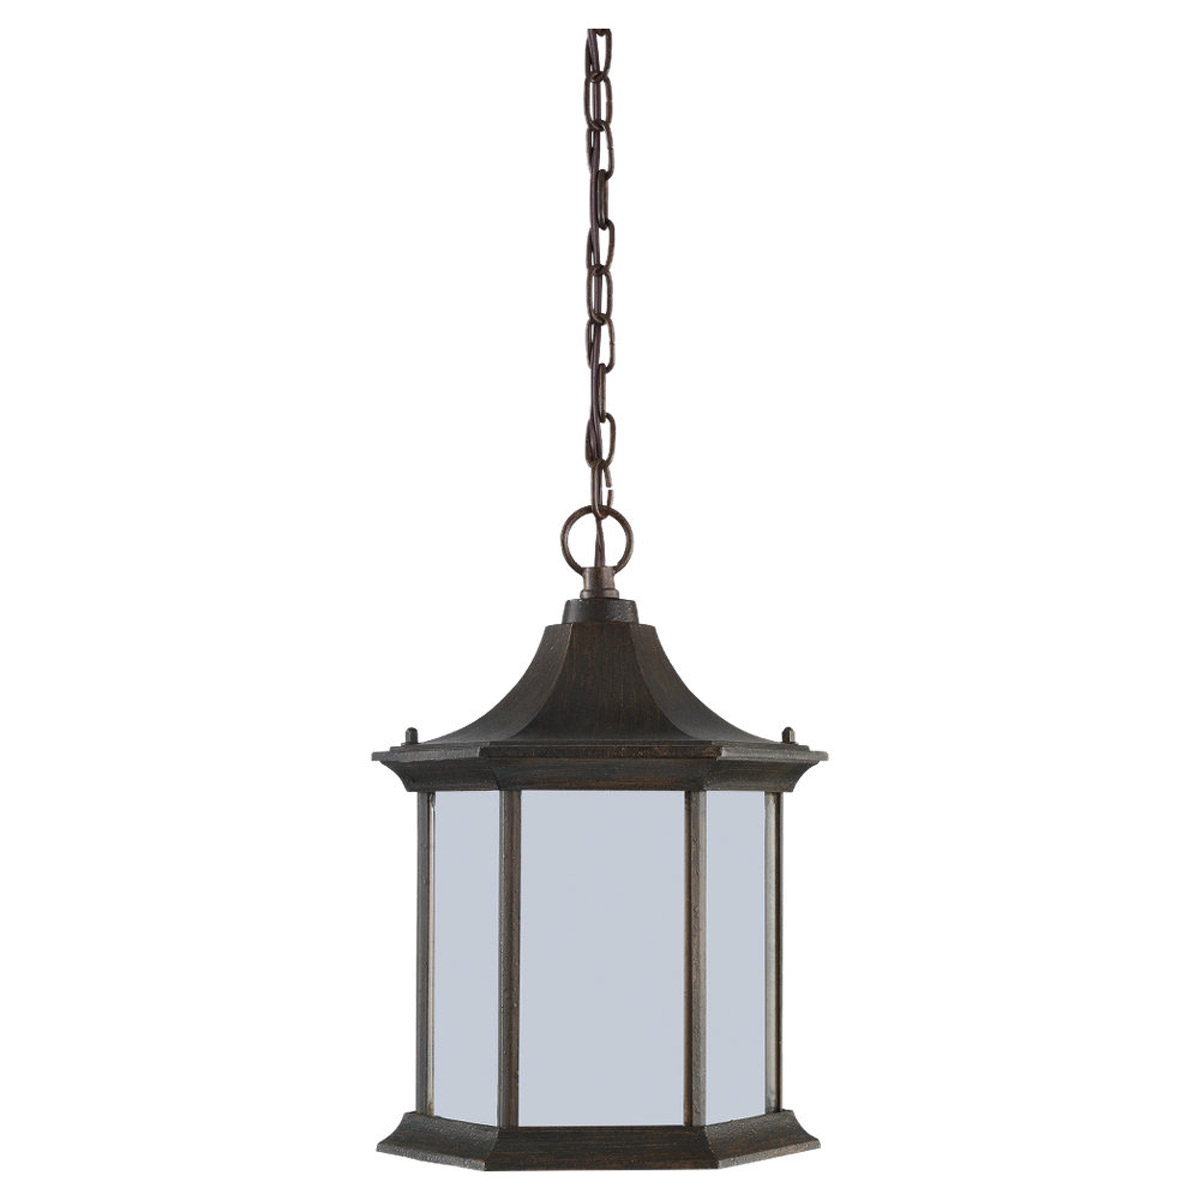 Sea Gull Lighting Ardsley Court 1 Light Outdoor Pendant in Textured Rust Patina 69136PBLE-08 photo